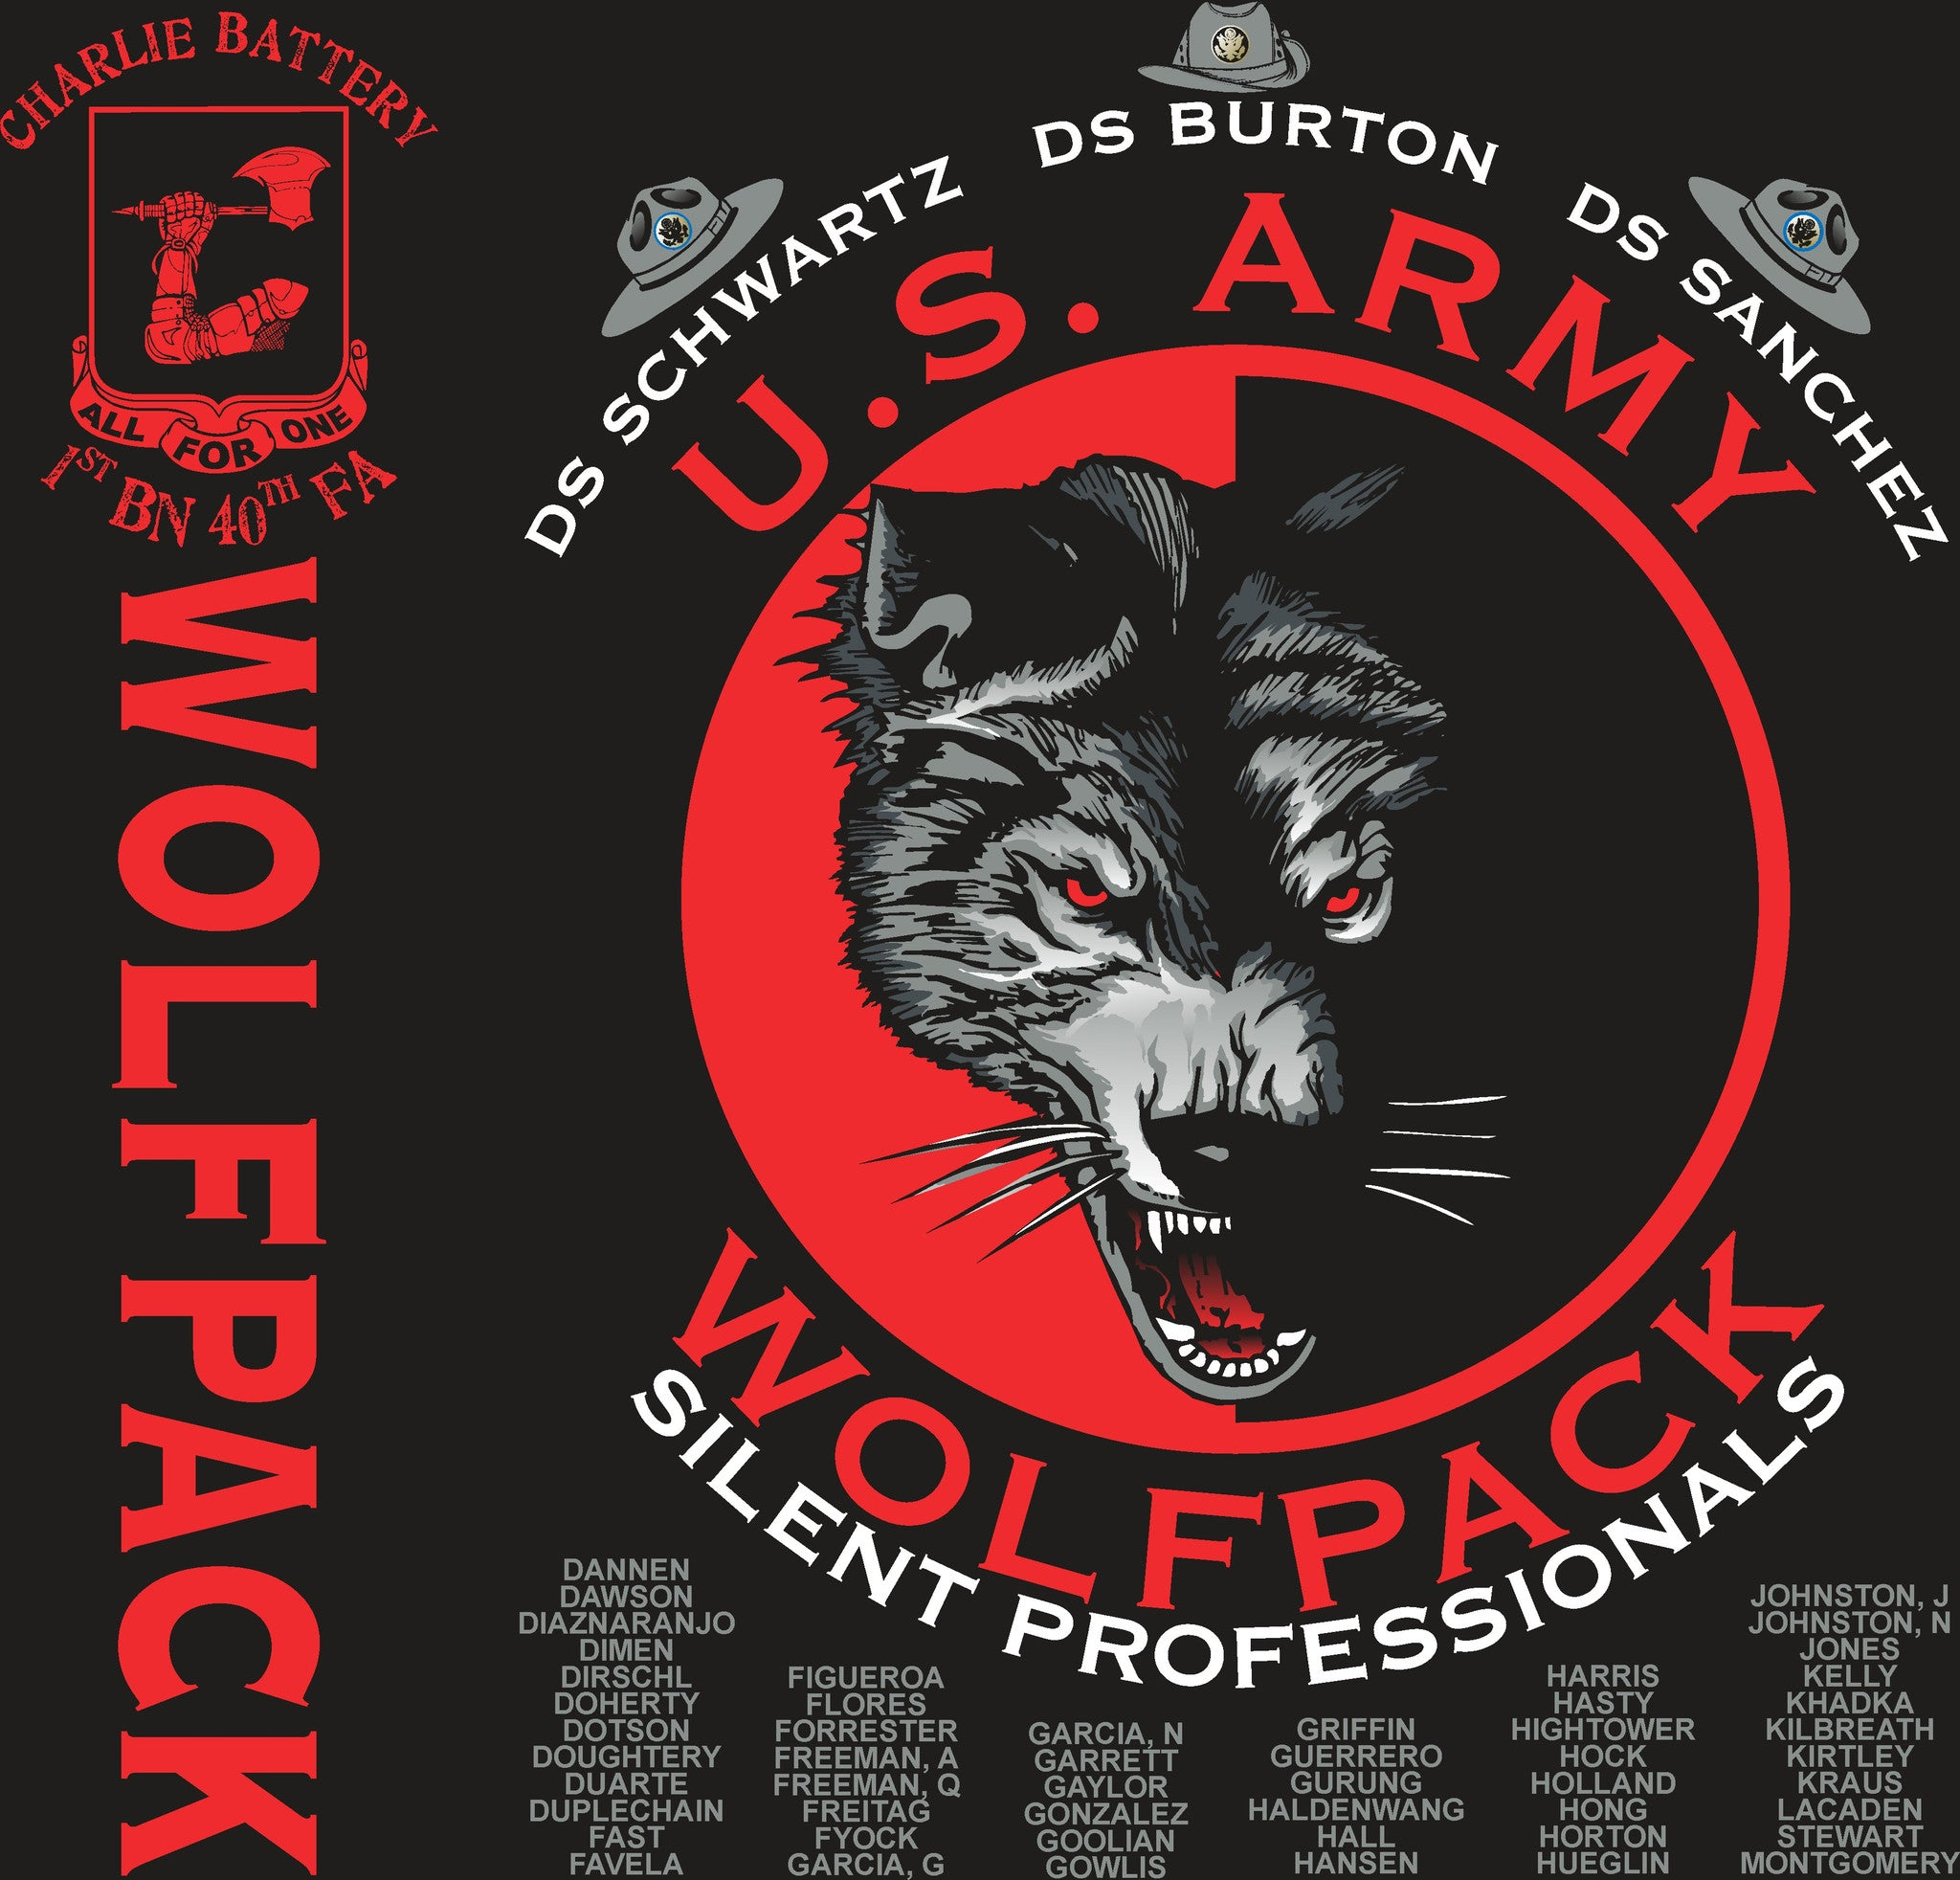 Platoon Shirts CHARLIE 1st 40th WOLFPACK APR 2015